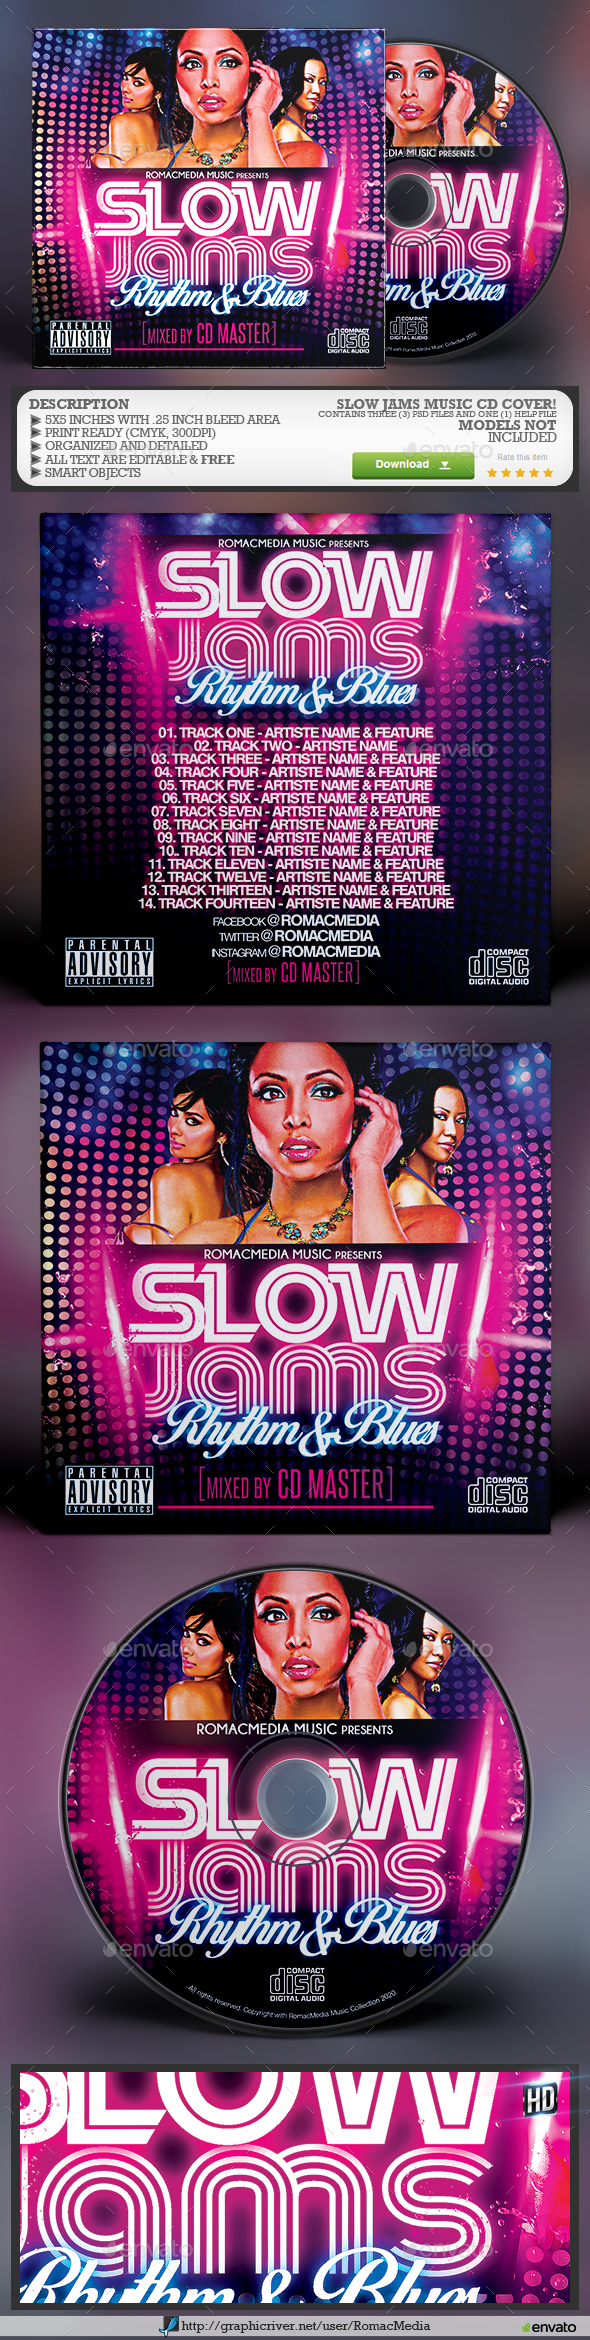 Slow Jams RnB Music CD Cover - CD & DVD Artwork Print Templates